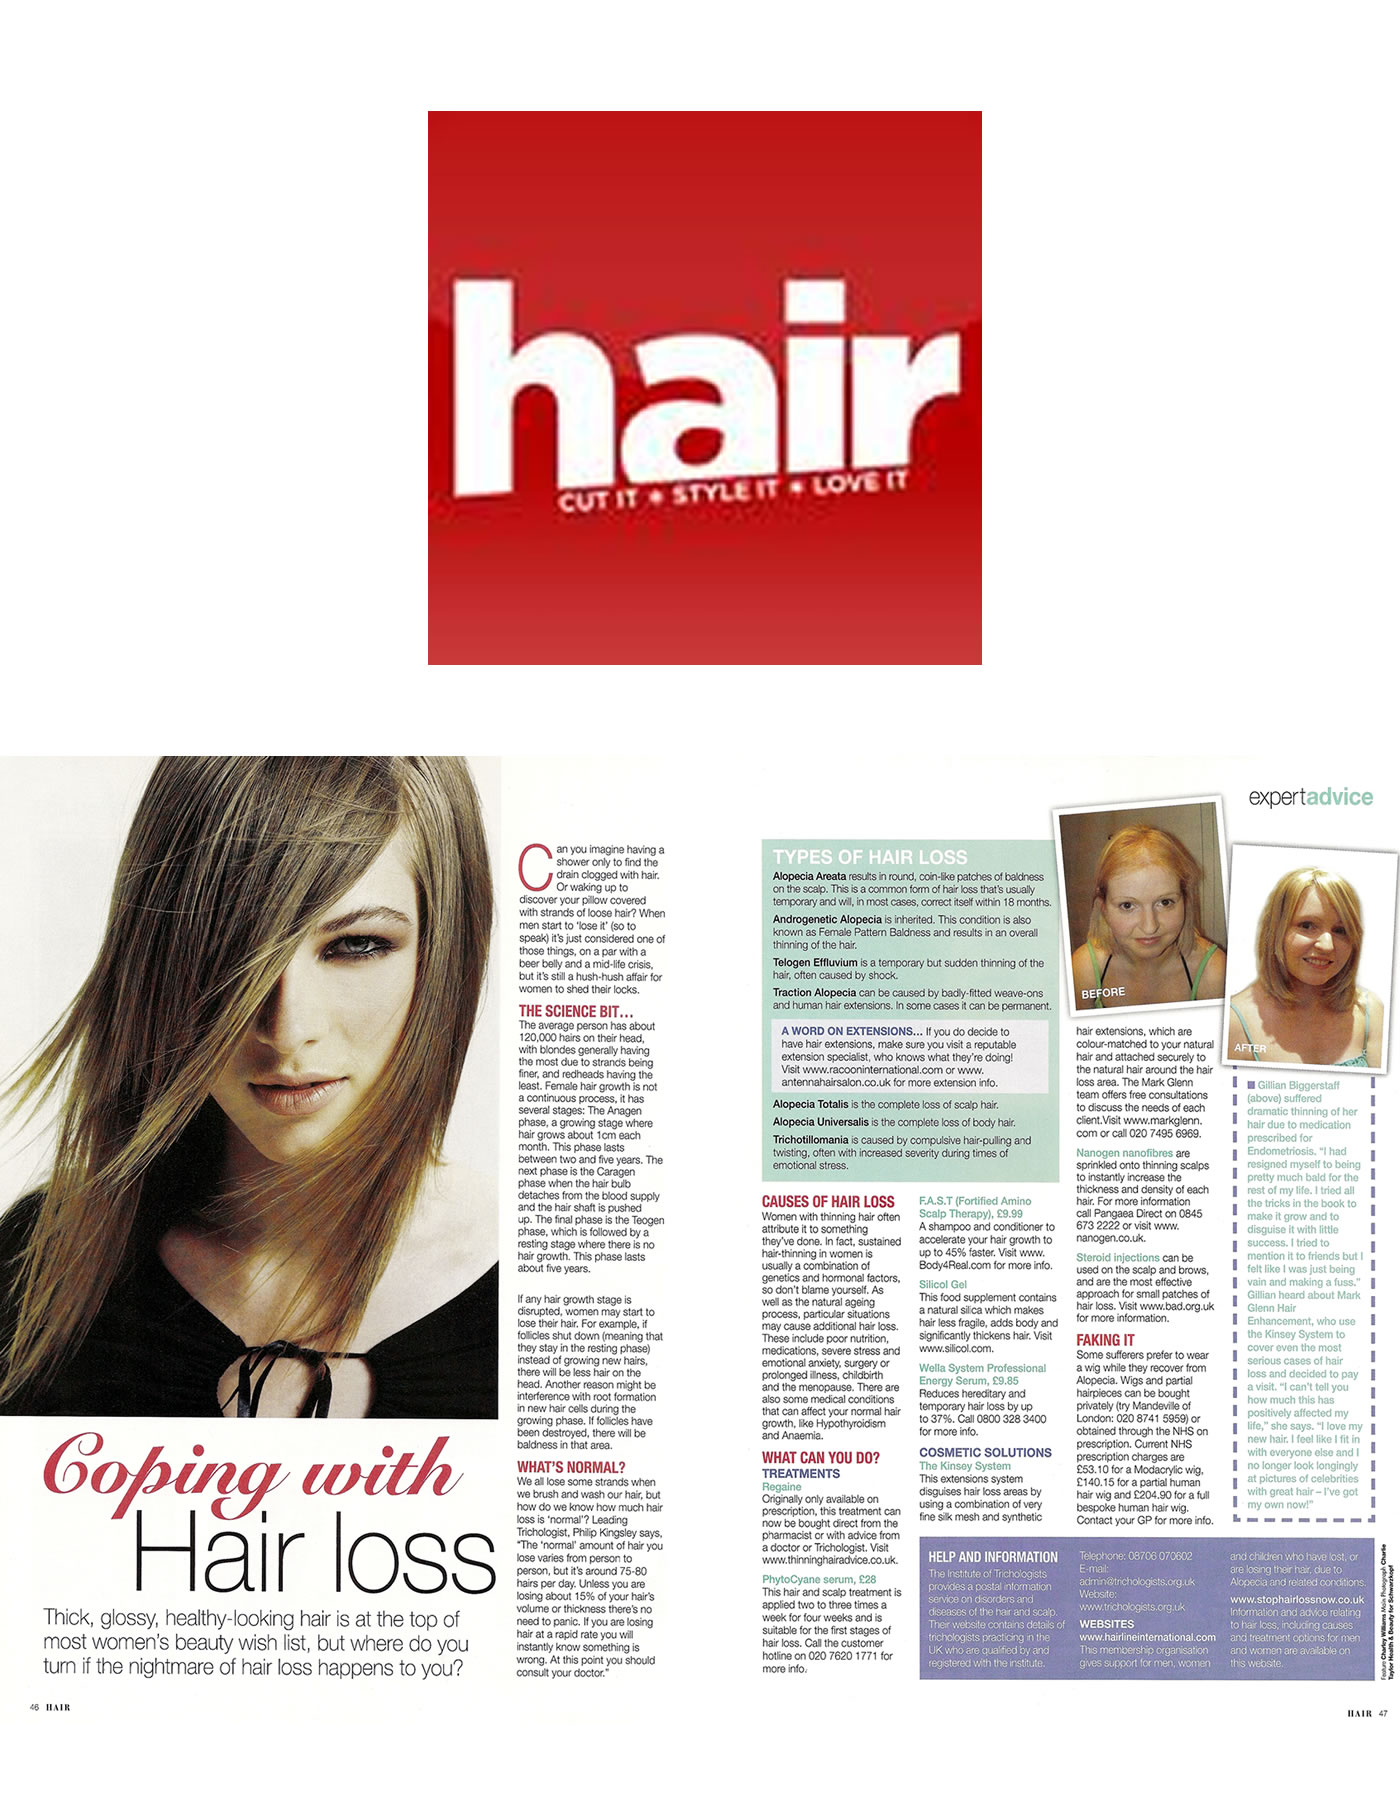 'Coping with hair loss' - Hair Magazine recommends and features MG's Kinsey System